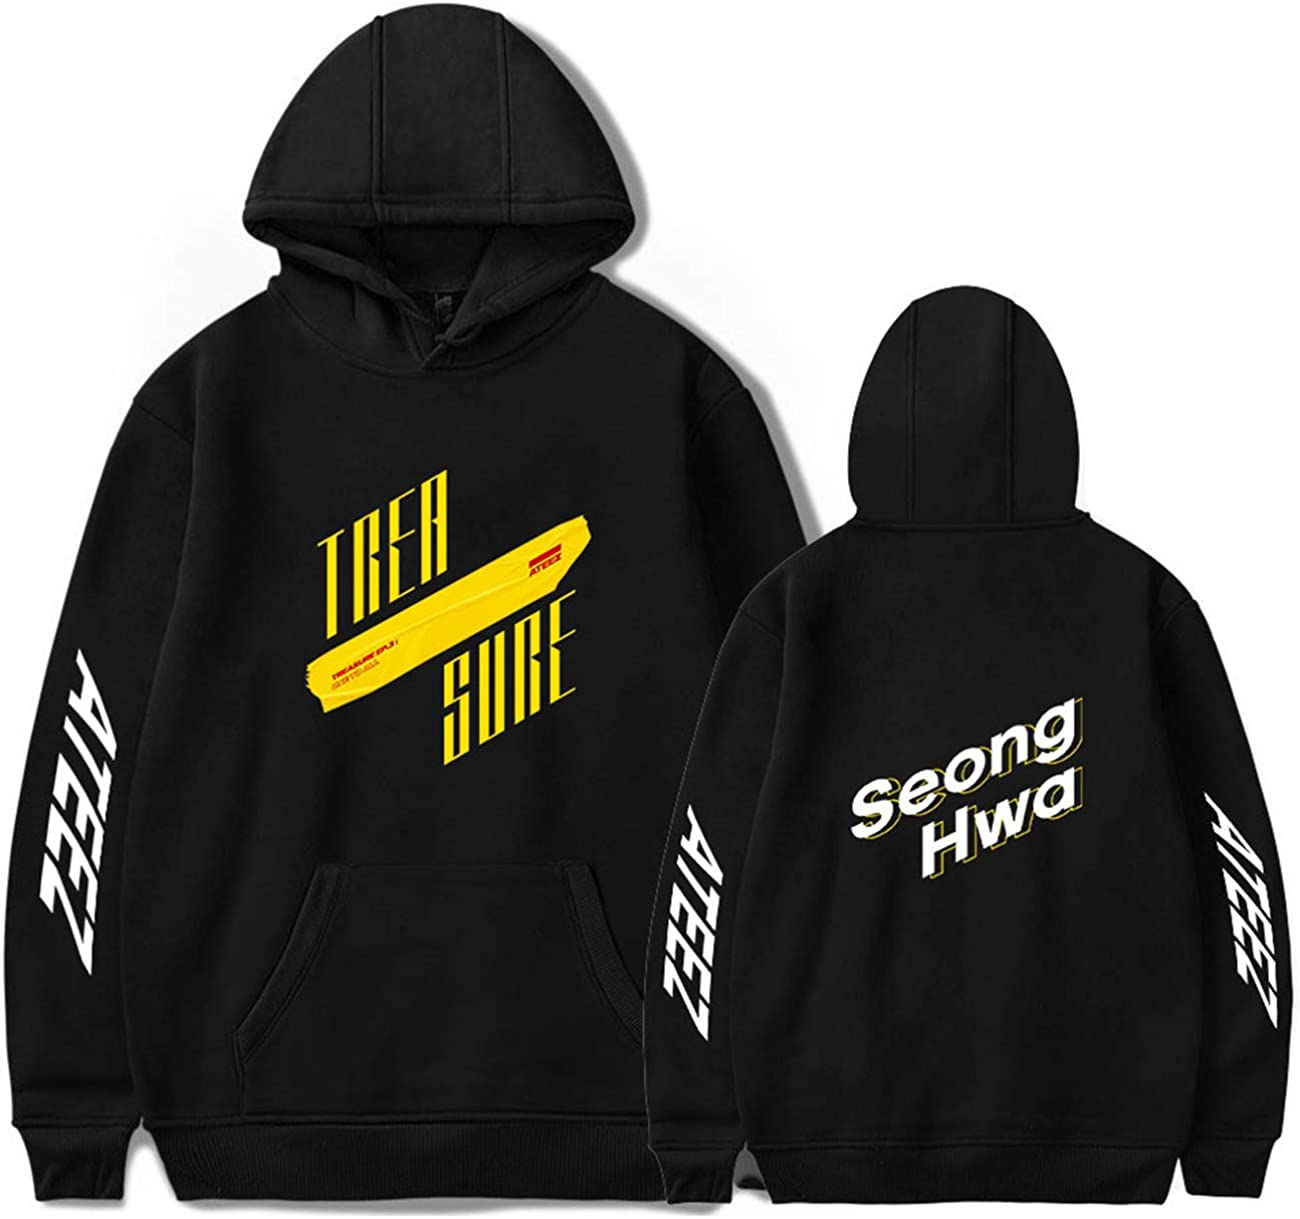 ZIGJOY Unisex ATEEZ Album Hoodie Sweatershirt Jumper Wooyoung San Mingi Yeosang Pullover Hooded Sweater for Fans Atiny